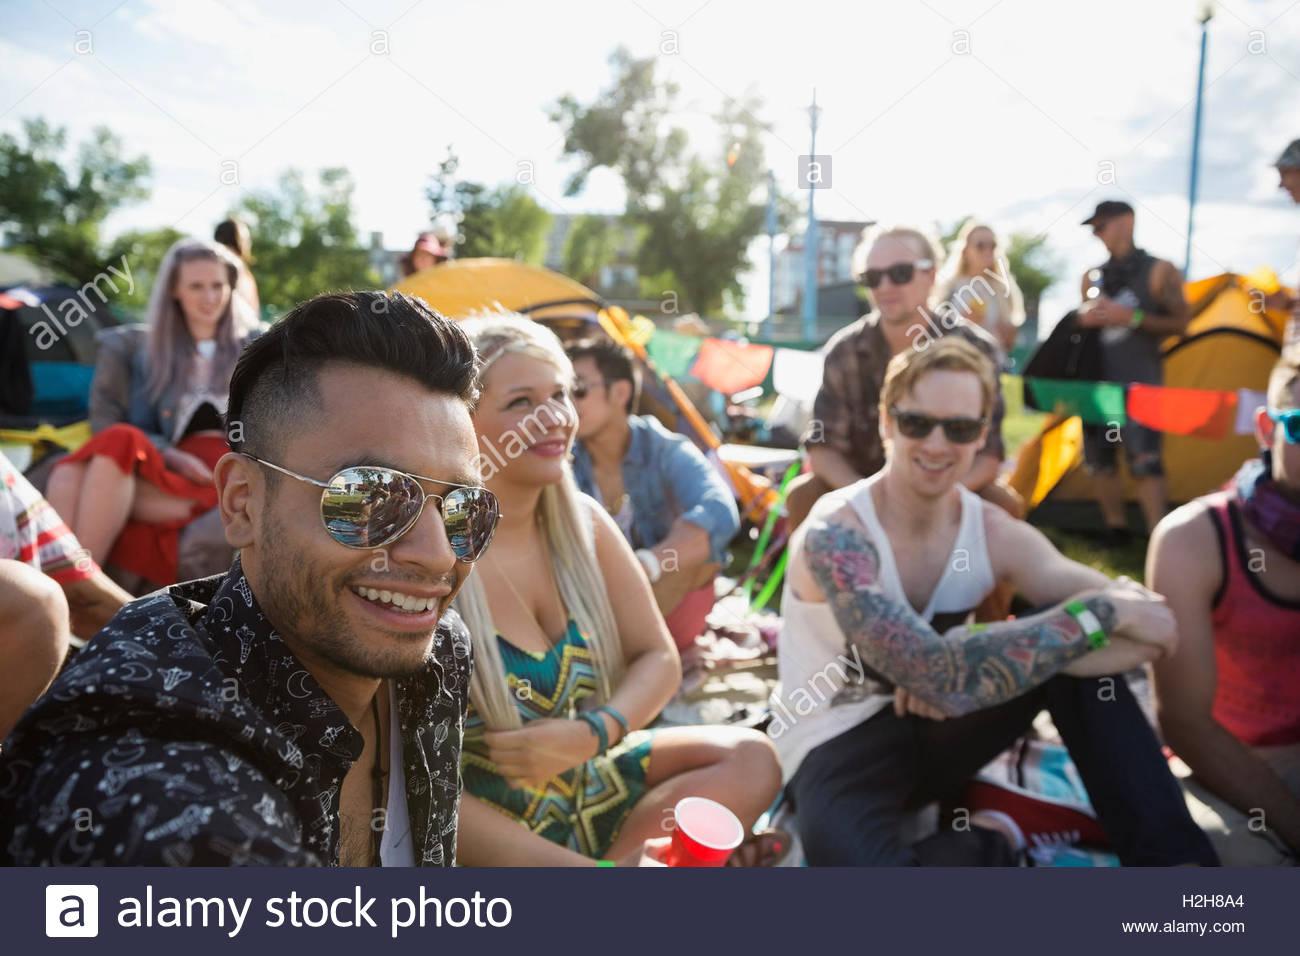 Portrait confident young men enjoying summer music festival - Stock Image